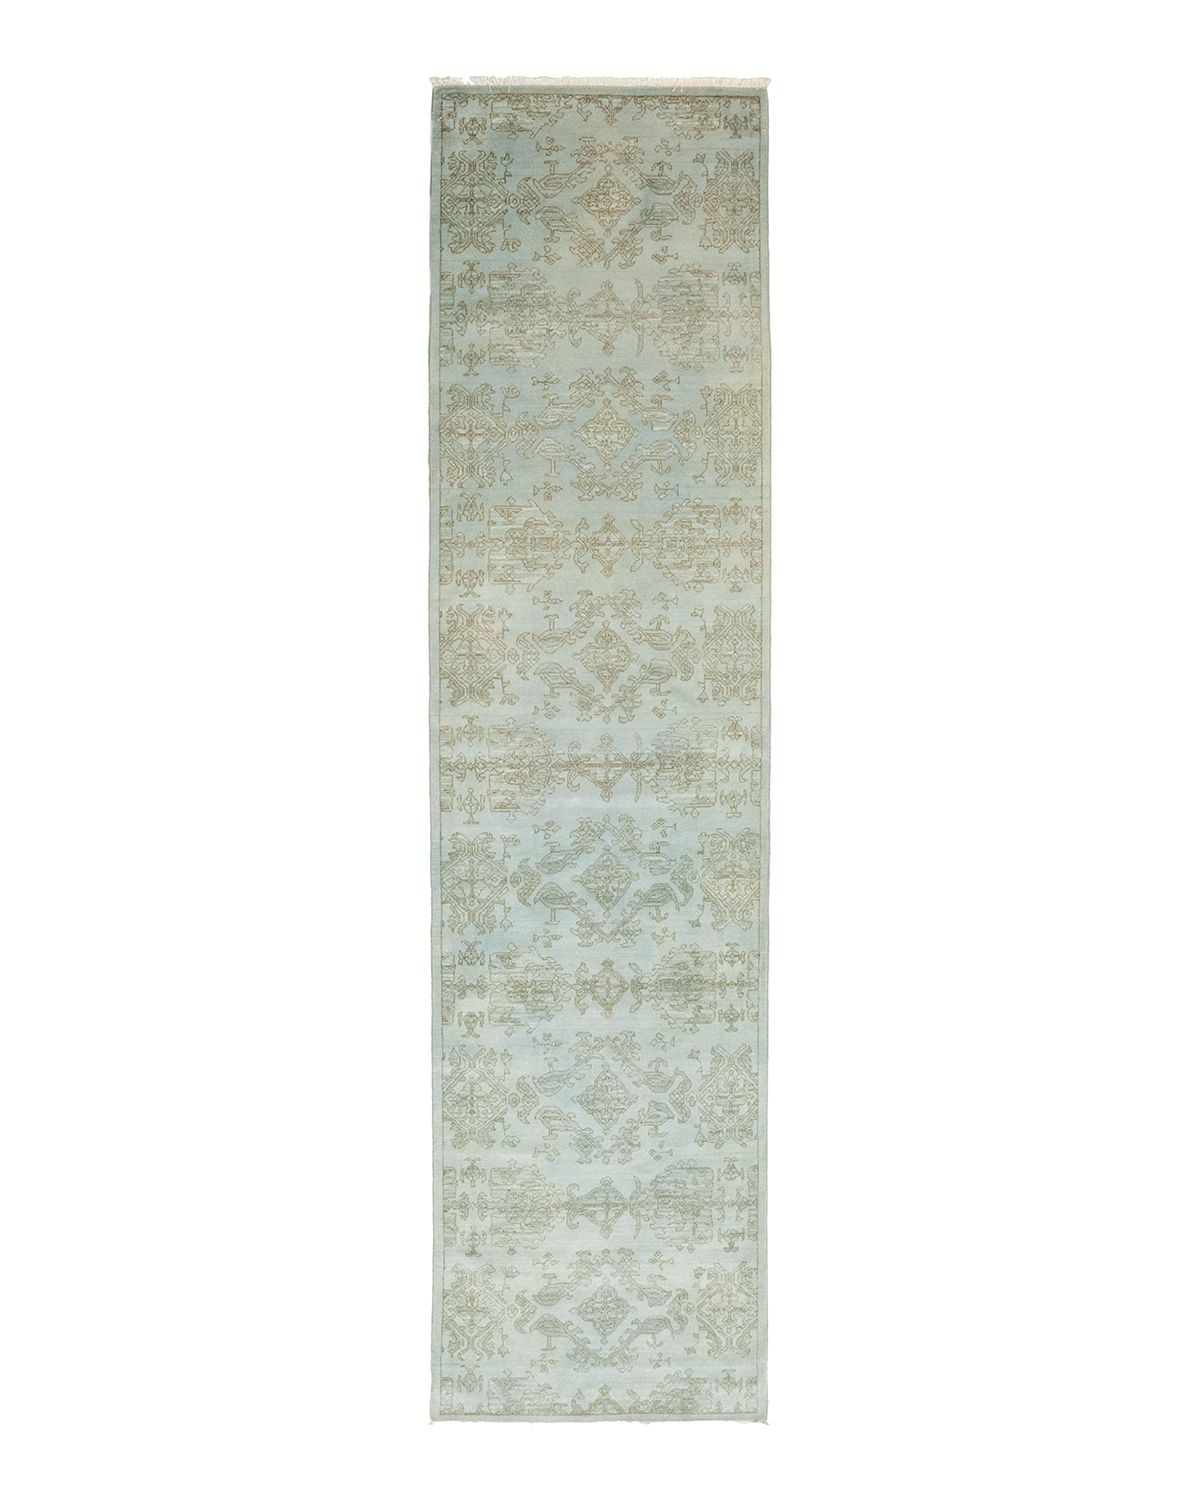 Solo Rugs Ziegler 4 Hand Knotted Runner Rug 3 X 12 3